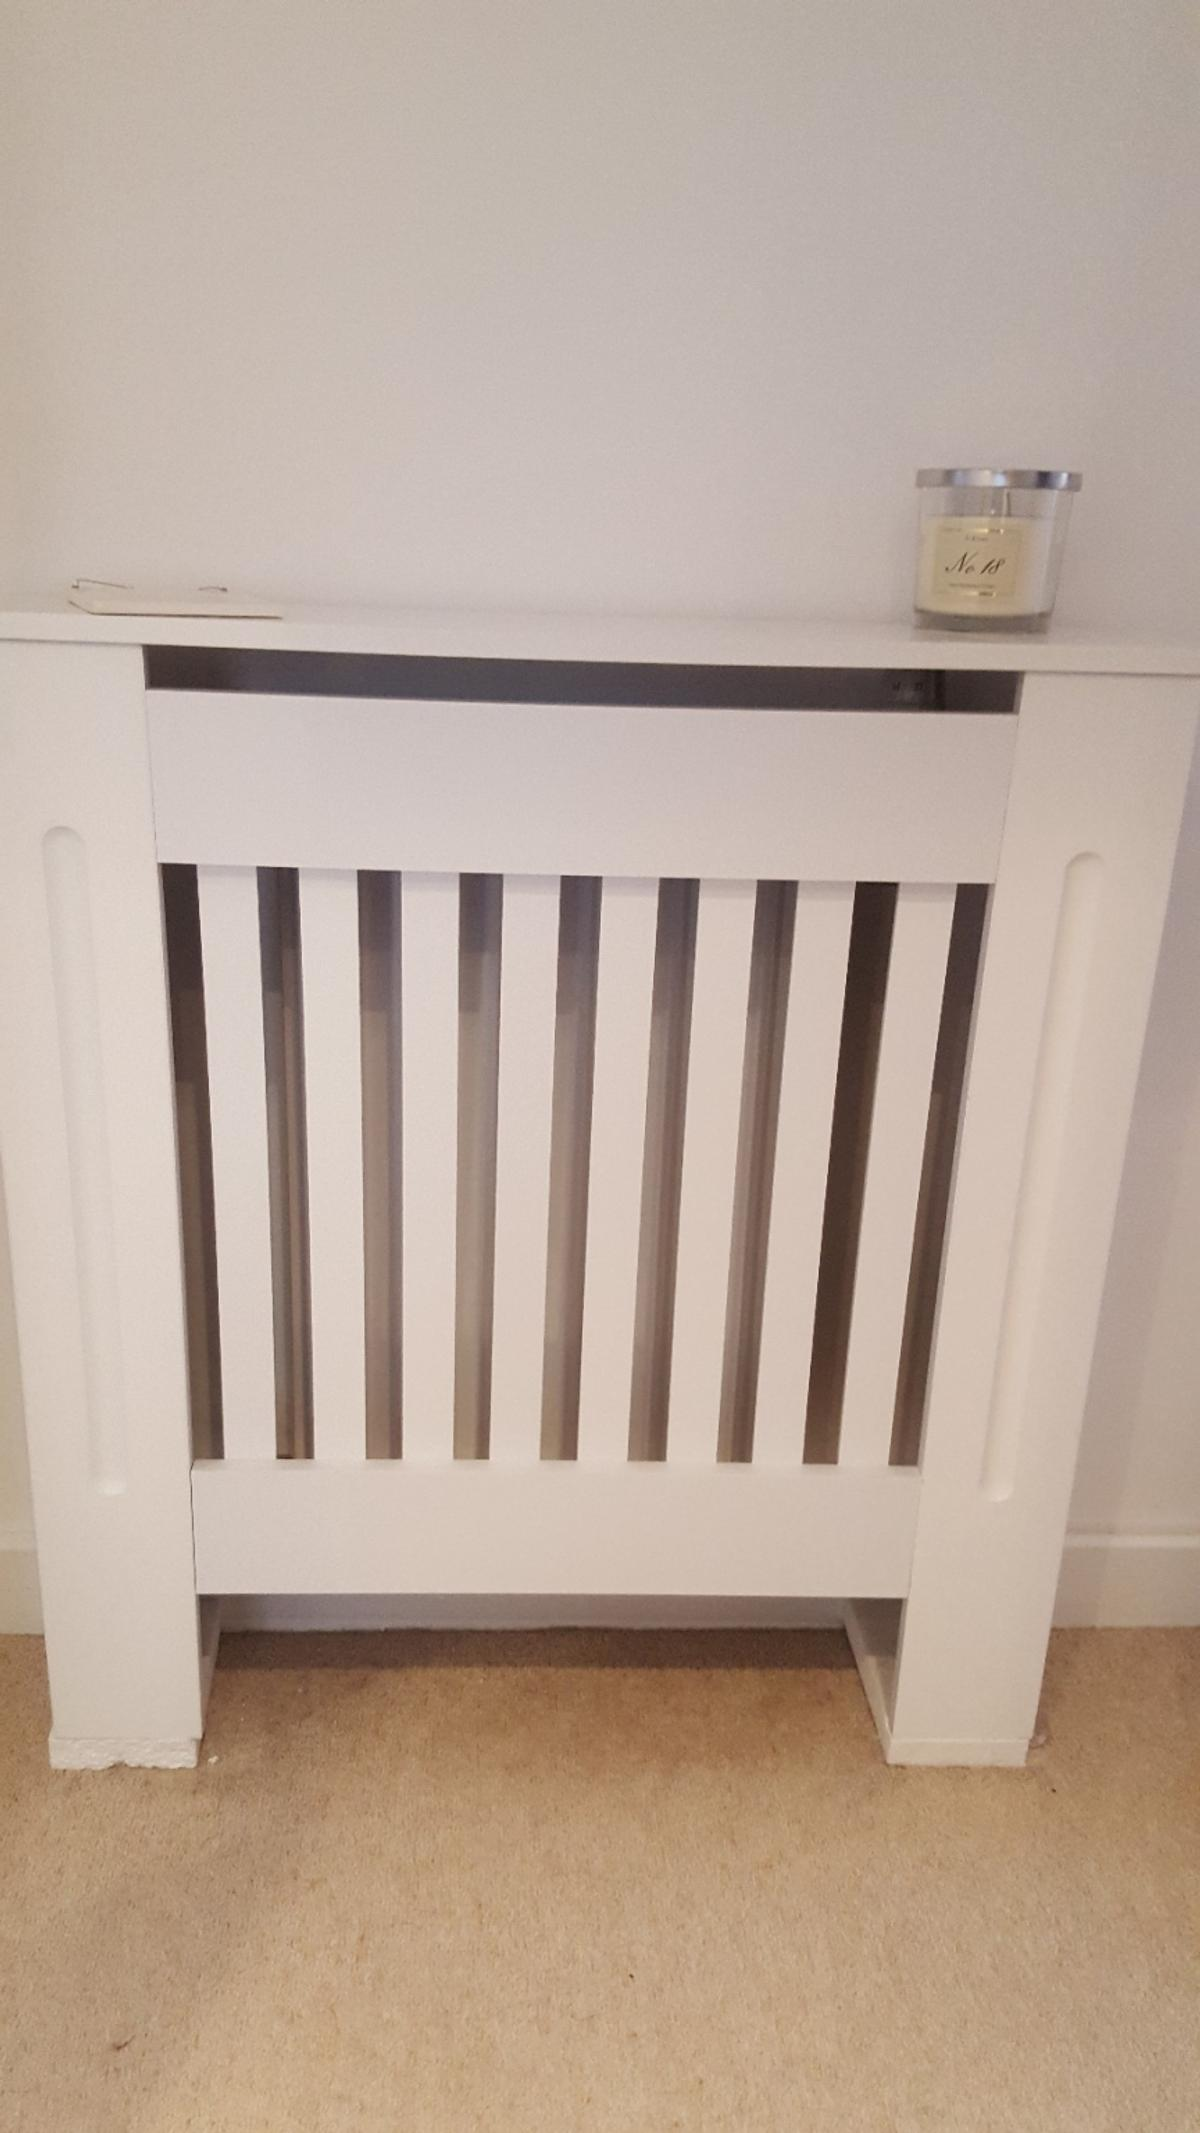 Small White Radiator Cover Like New In Ss14 Basildon For 30 00 For Sale Shpock